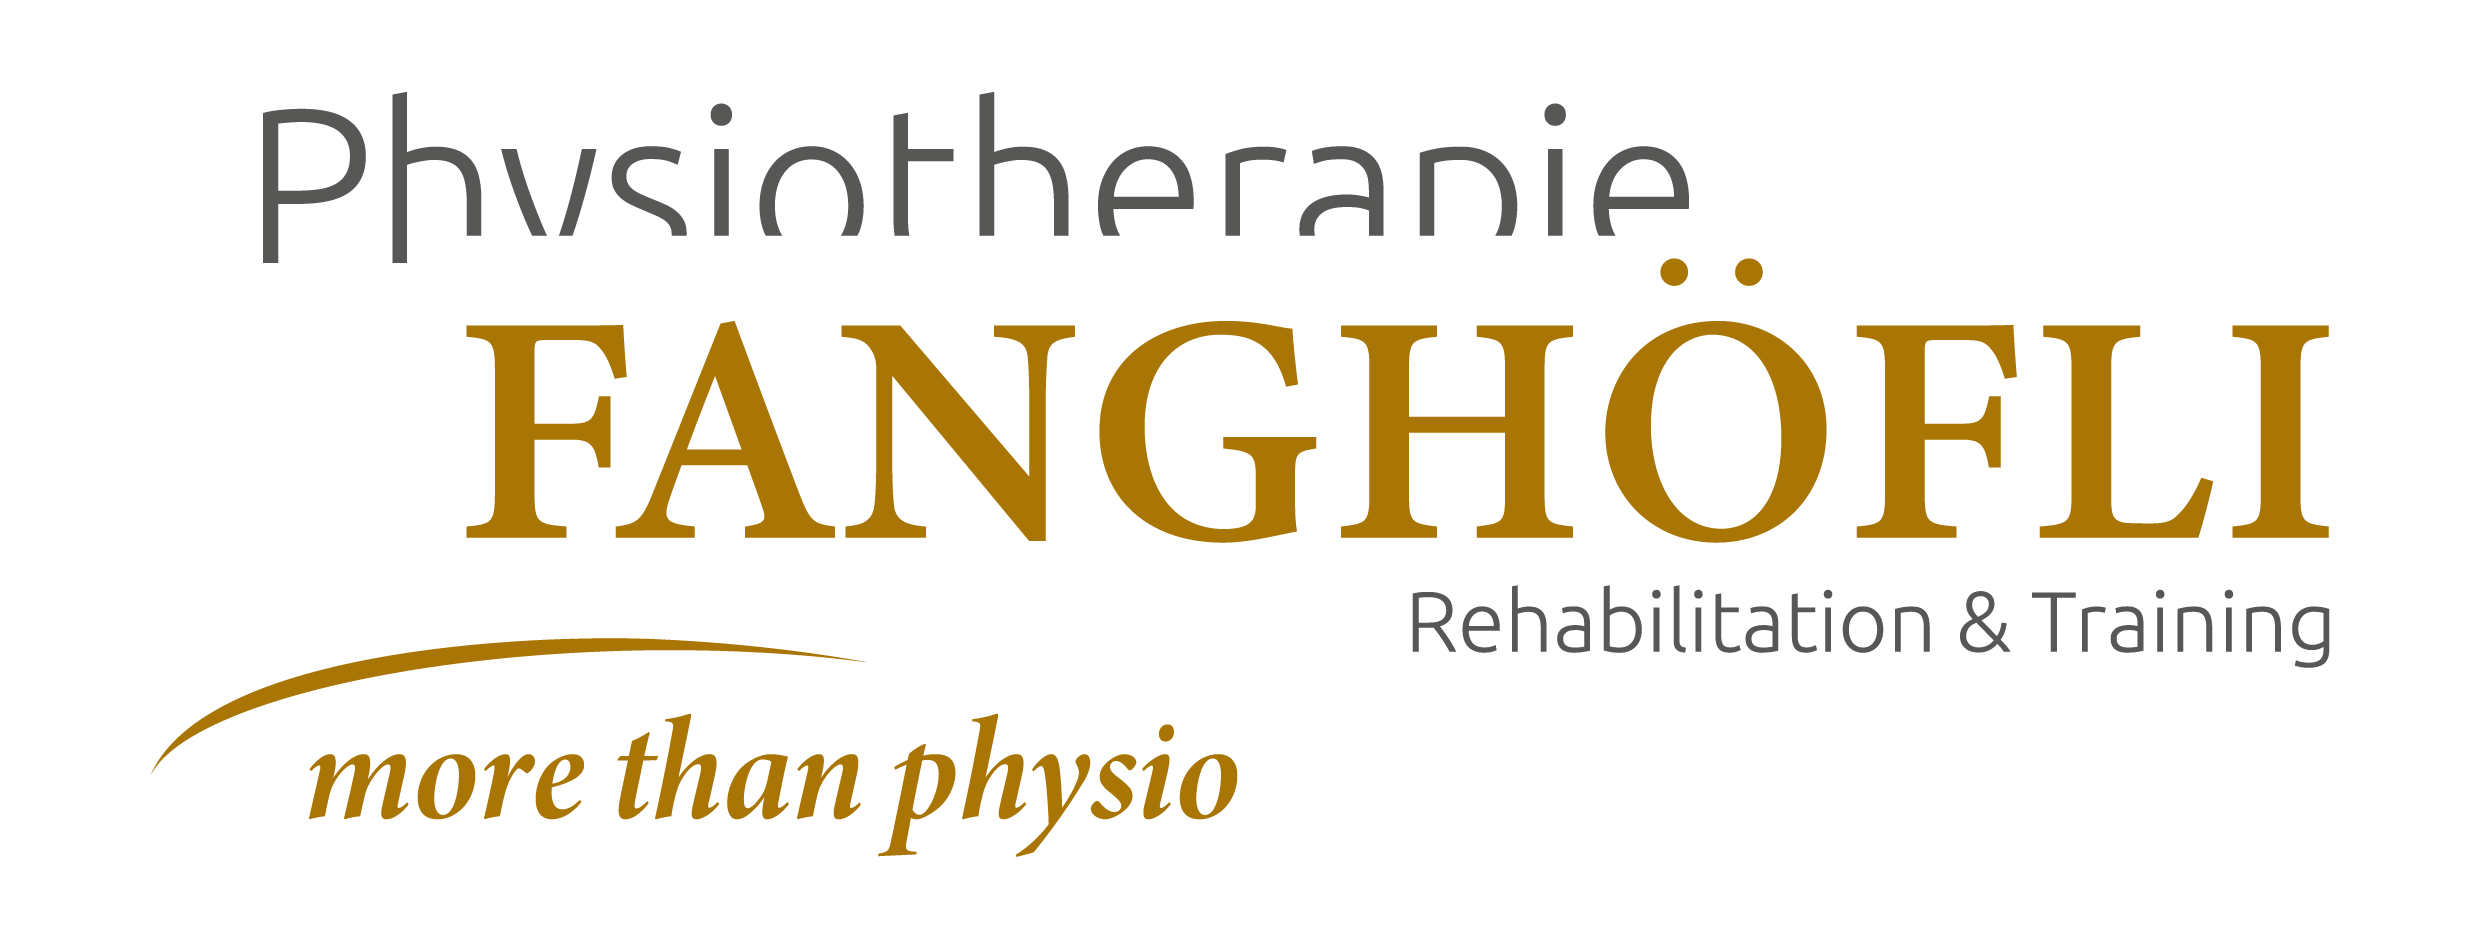 Physiotherapie Fanghöfli